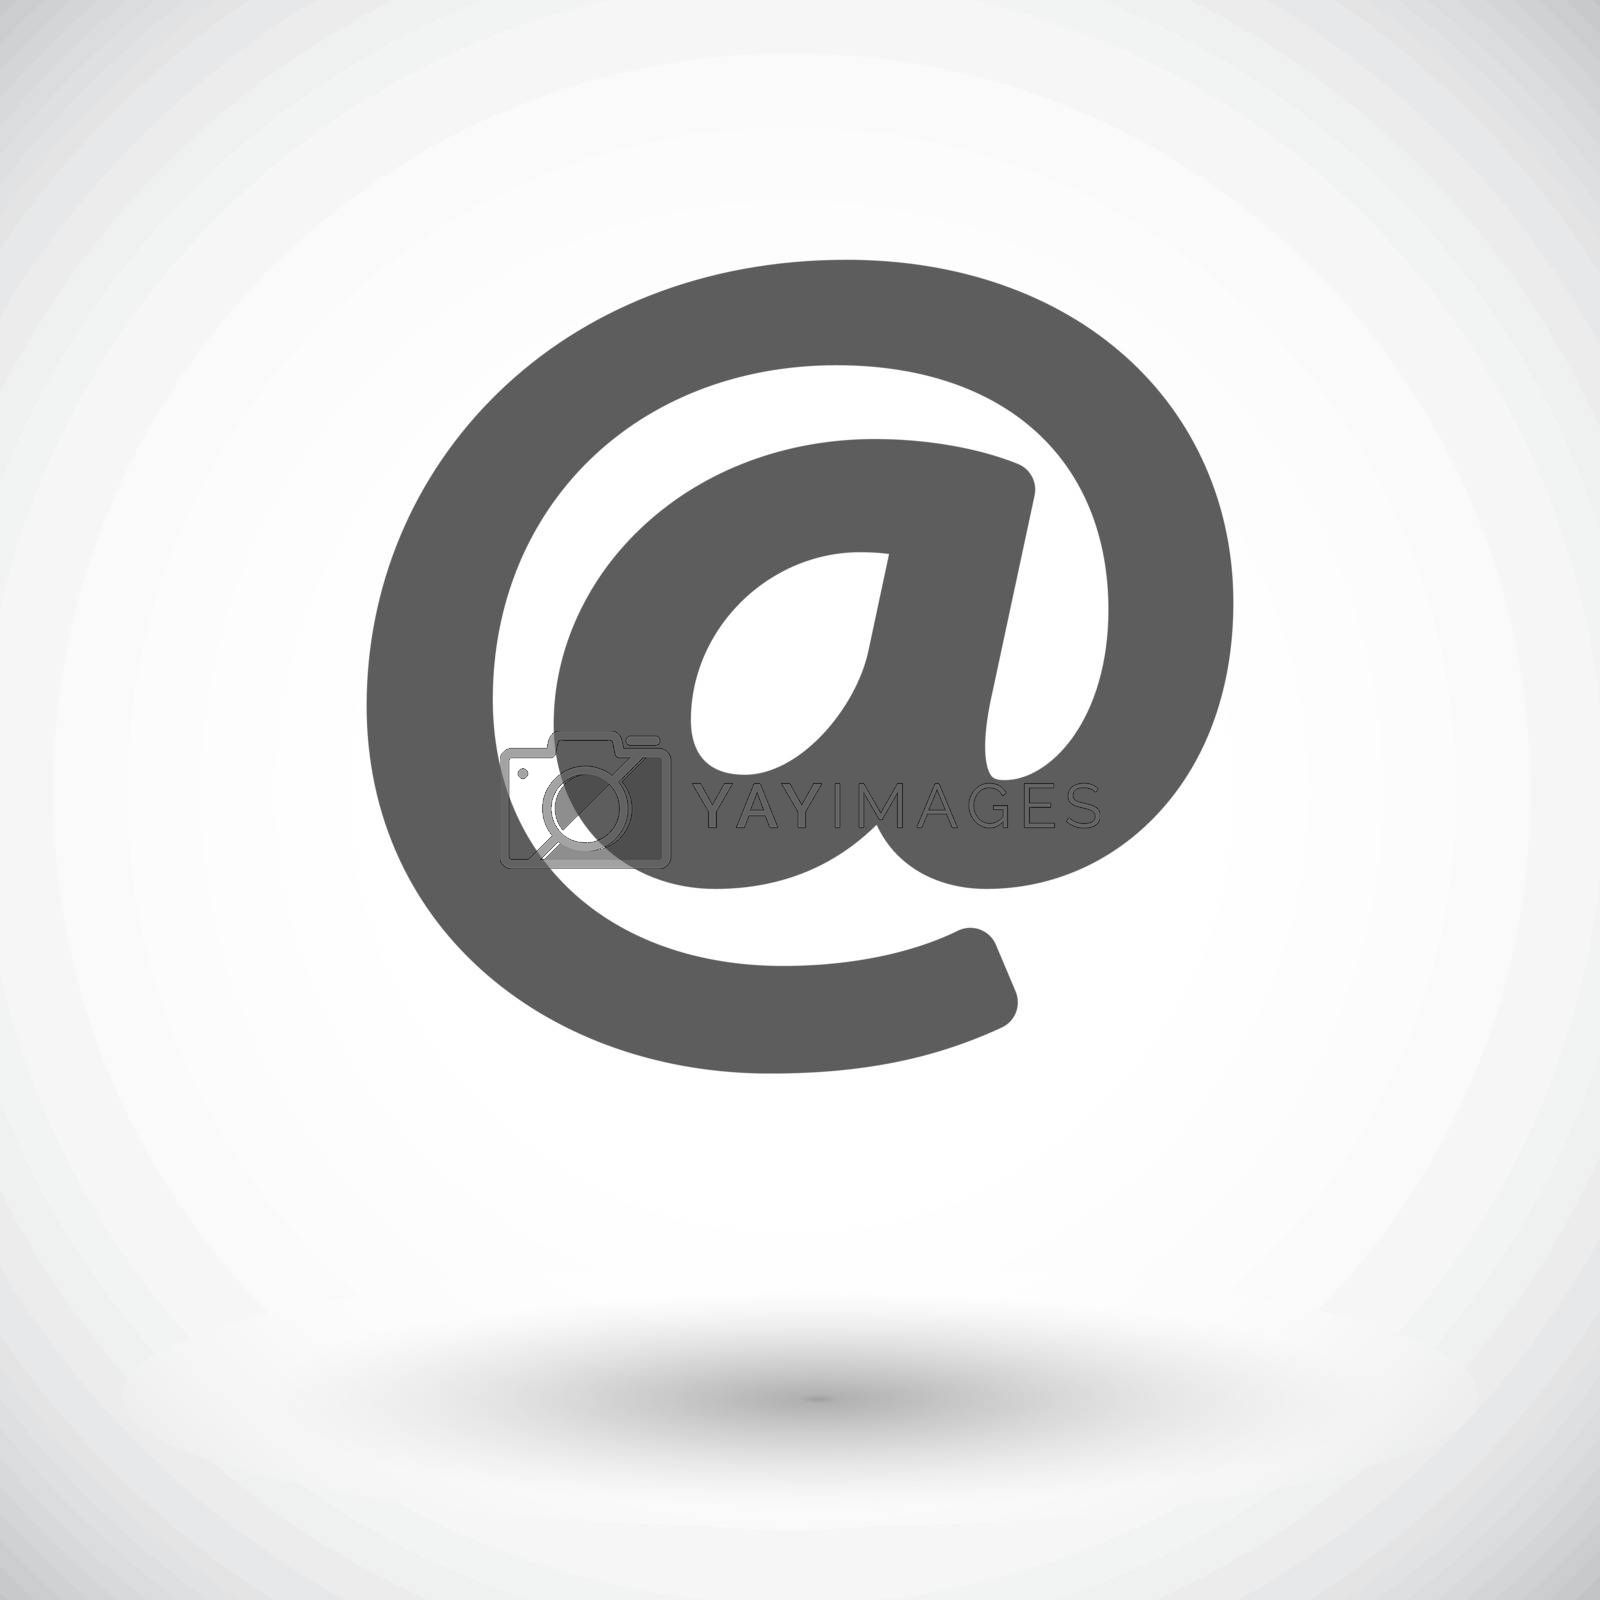 Email. Single flat icon on white background. Vector illustration.